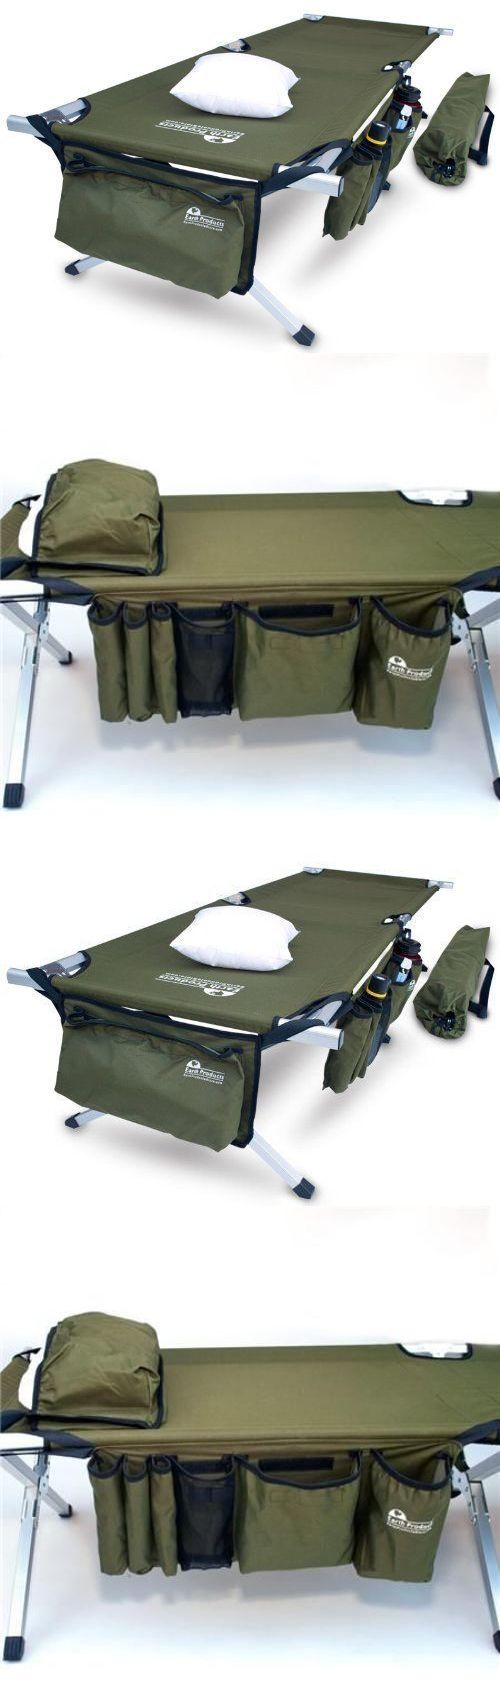 Sleeping bag suit moreover blow up air mattress as well bed inflatable - Cots 87099 Cot Sleeping Military Foldable Guest Bed Air Mattress Camping Portable Long Wide Buy